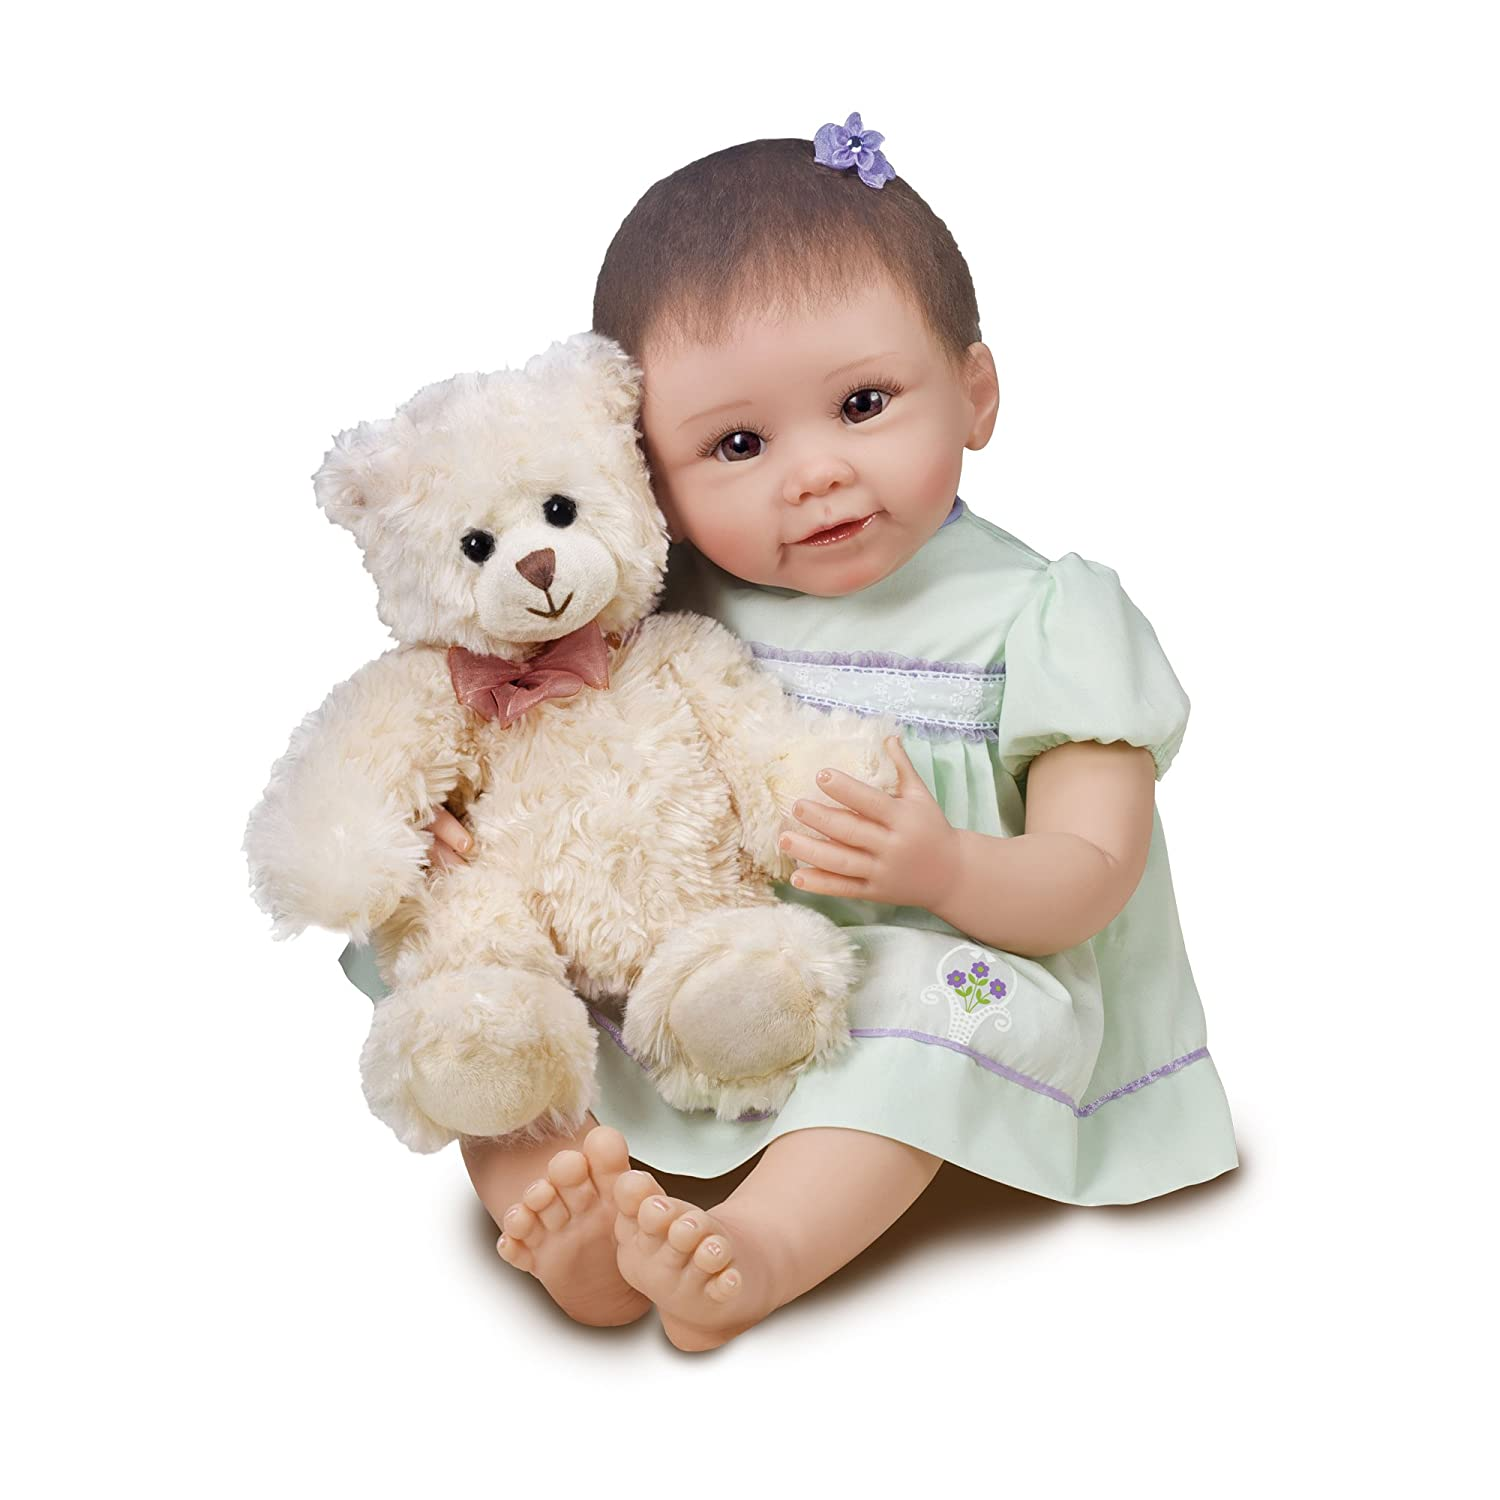 Ashton Drake - So Truly Real® Lifelike Newborn Baby Doll 'Lily and Grace Bear' - RealTouch™ Vinyl Skin Ashton Drake Galleries